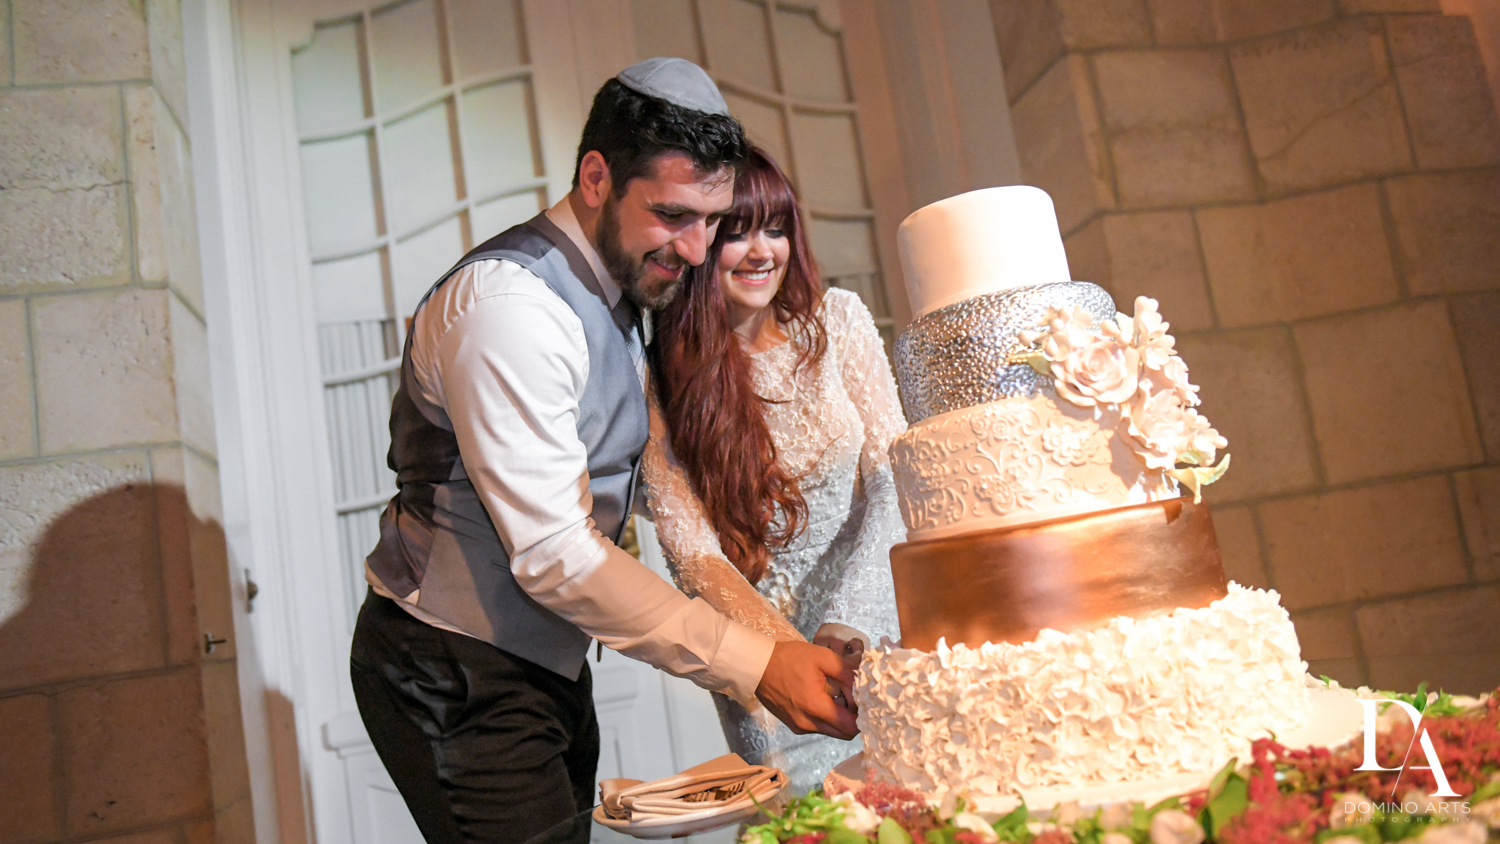 wedding cake at Vintage Garden Wedding at Flagler Museum Palm Beach by Domino Arts Photography